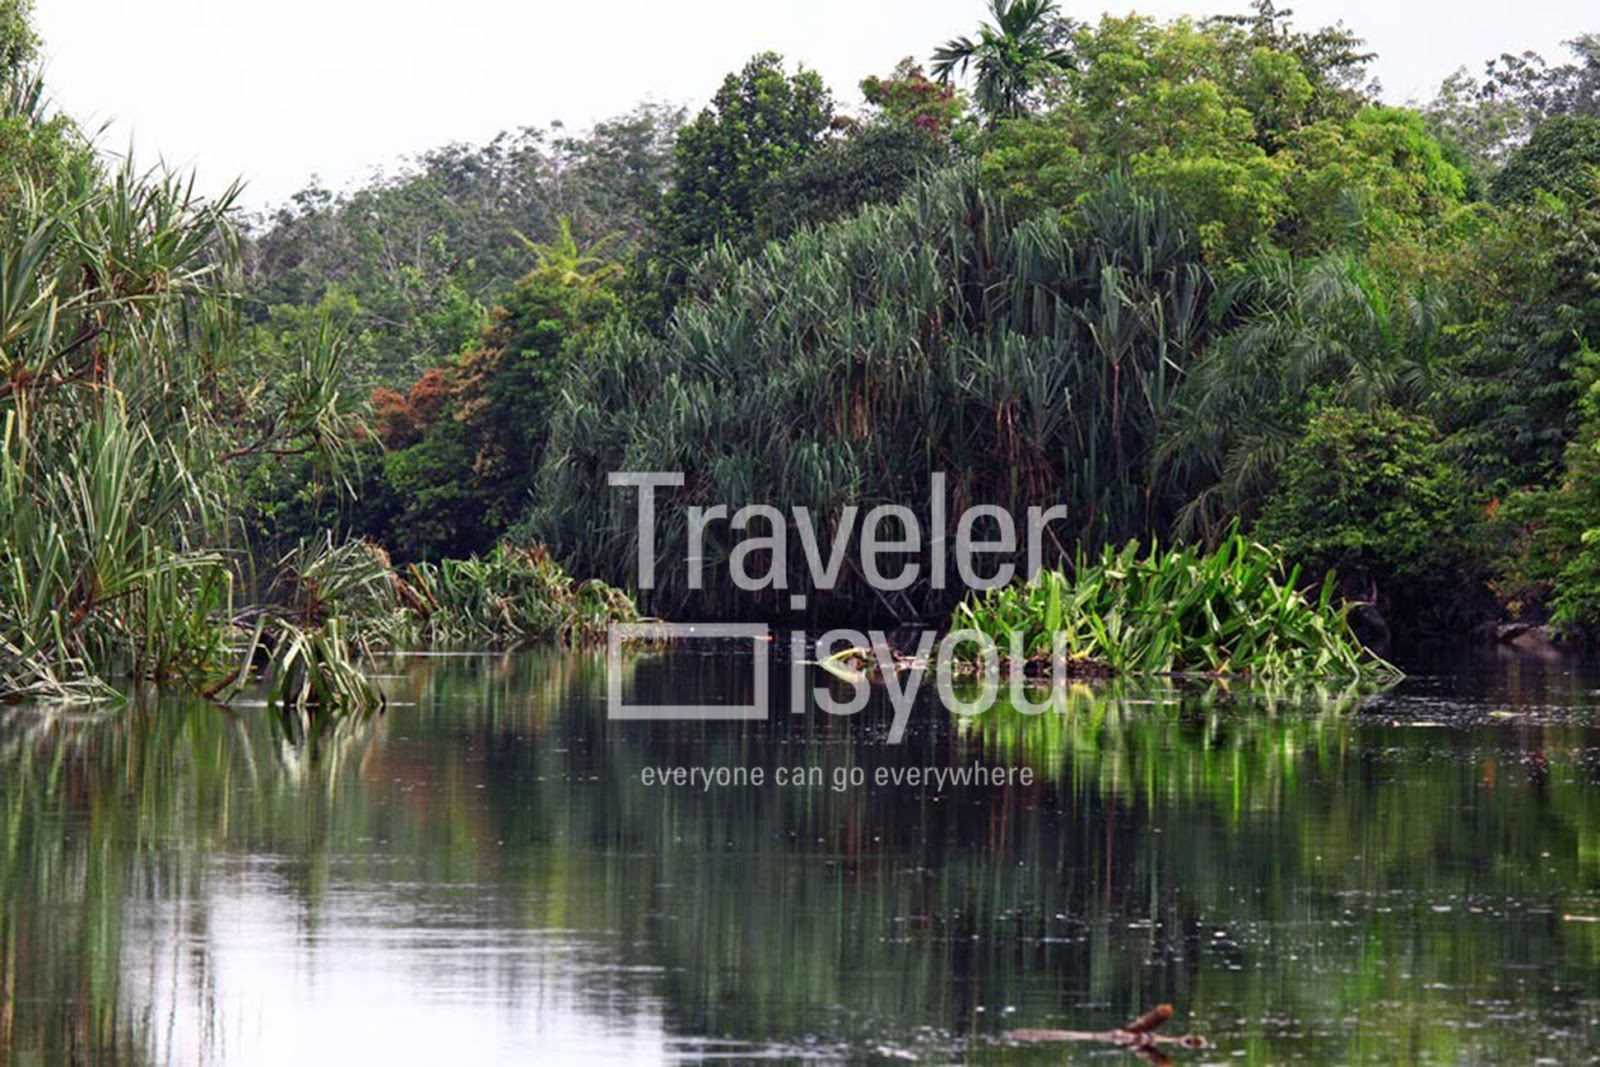 Kerumutan Forest Reserve is a Wildlife Reserve spanning over 1.3 million hectares of lowland forests, and inhabited by hundreds of species of flora and fauna. The grand Kampar River runs along its border, lined with thick mangrove trees.